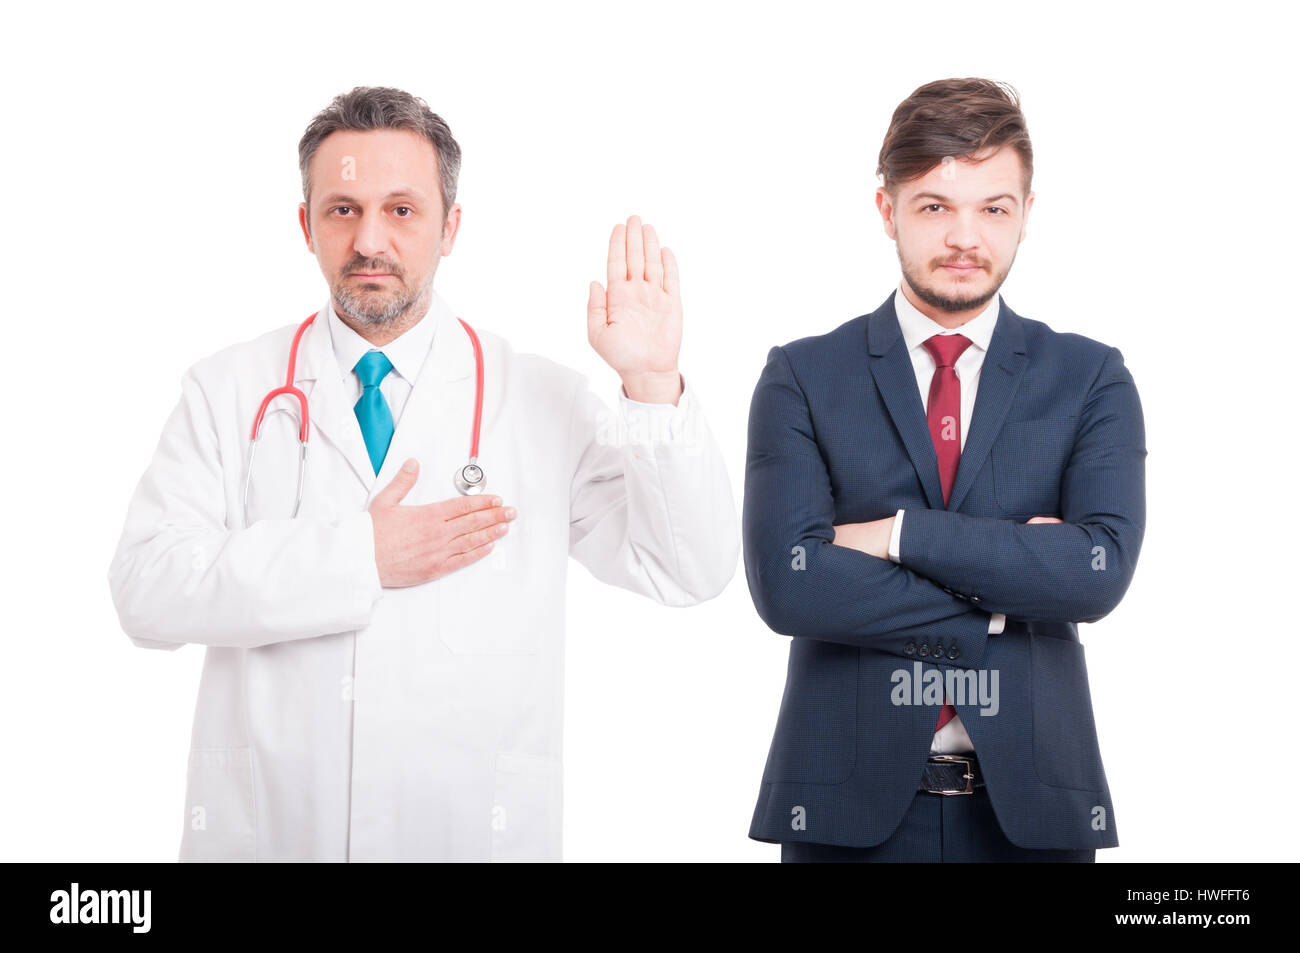 Honest male medic making a vow as devotion or loyalty concept near businessman isolated on white background - Stock Image